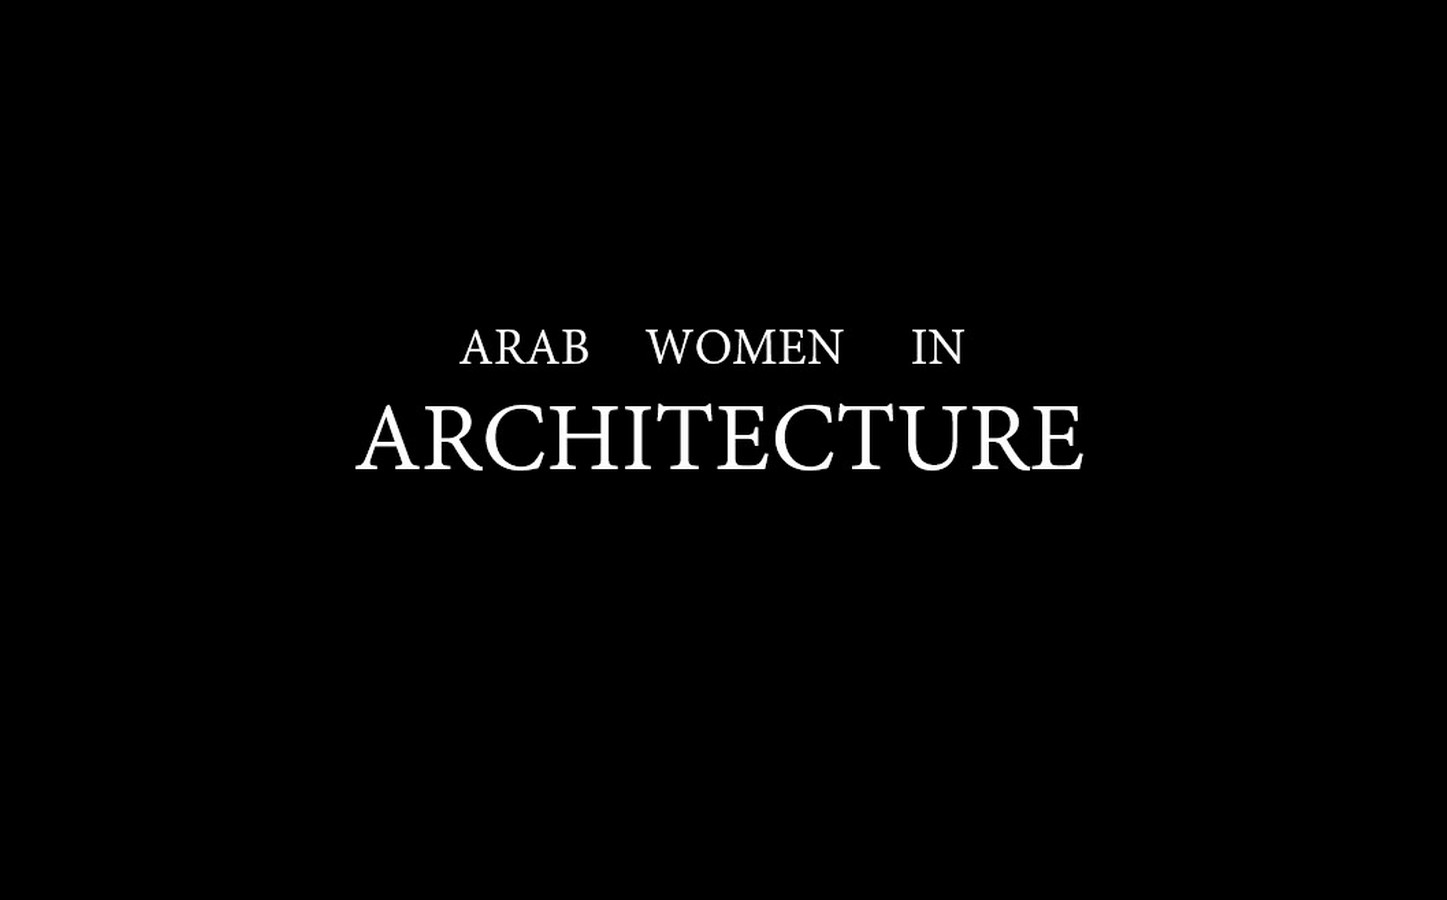 Youtube for Architects: Arab Women in Architecture by StudentAwardFilms